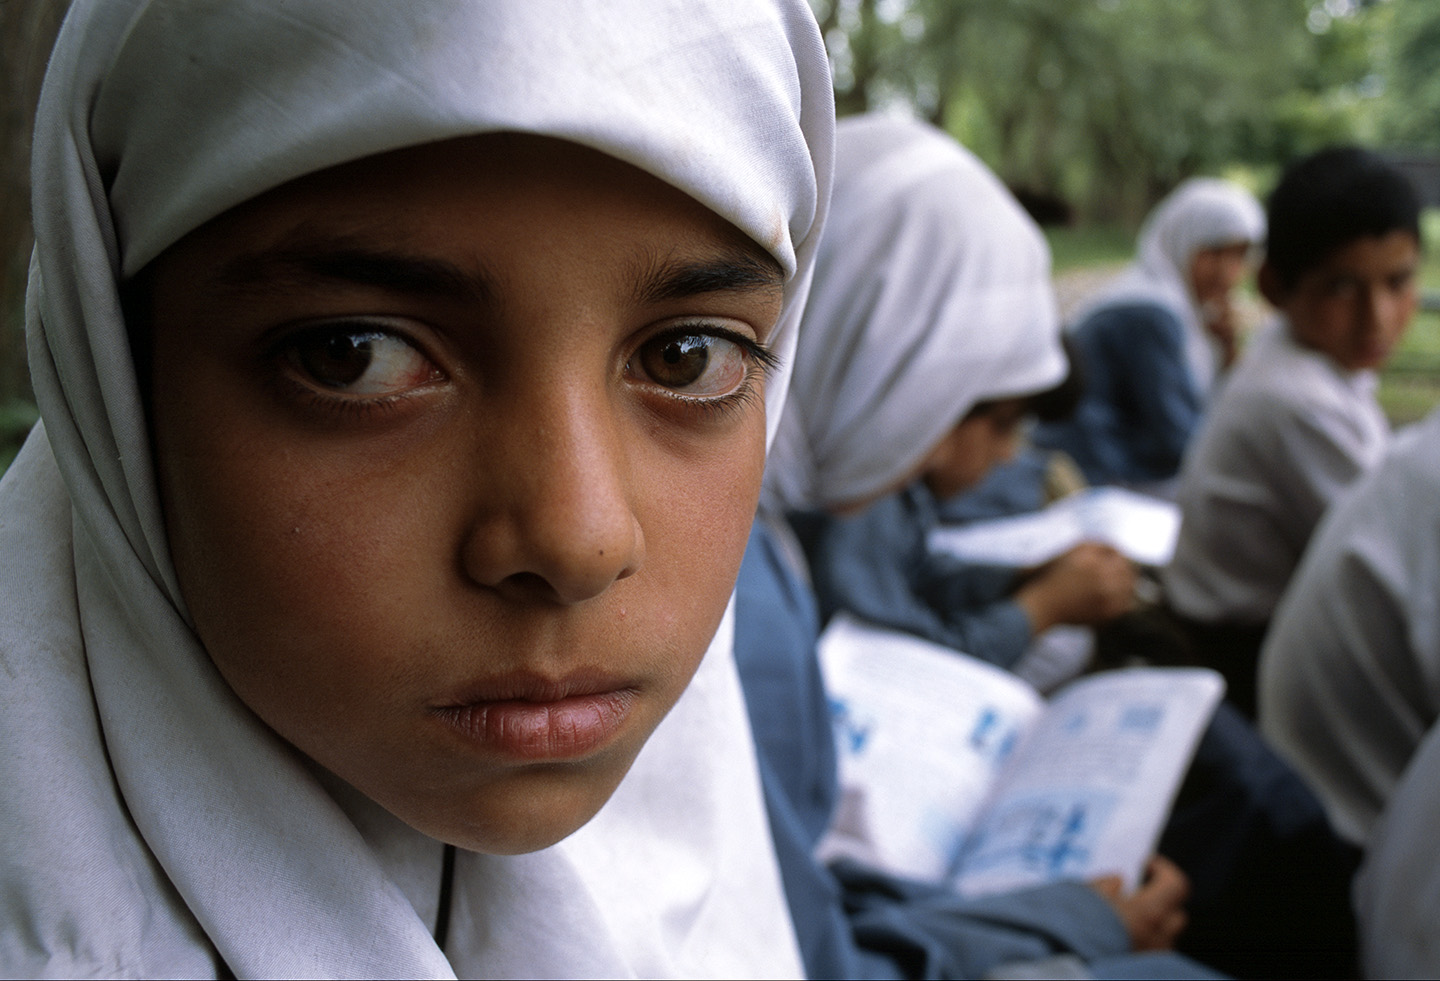 Growing up in a conflict zone, Kashmir.